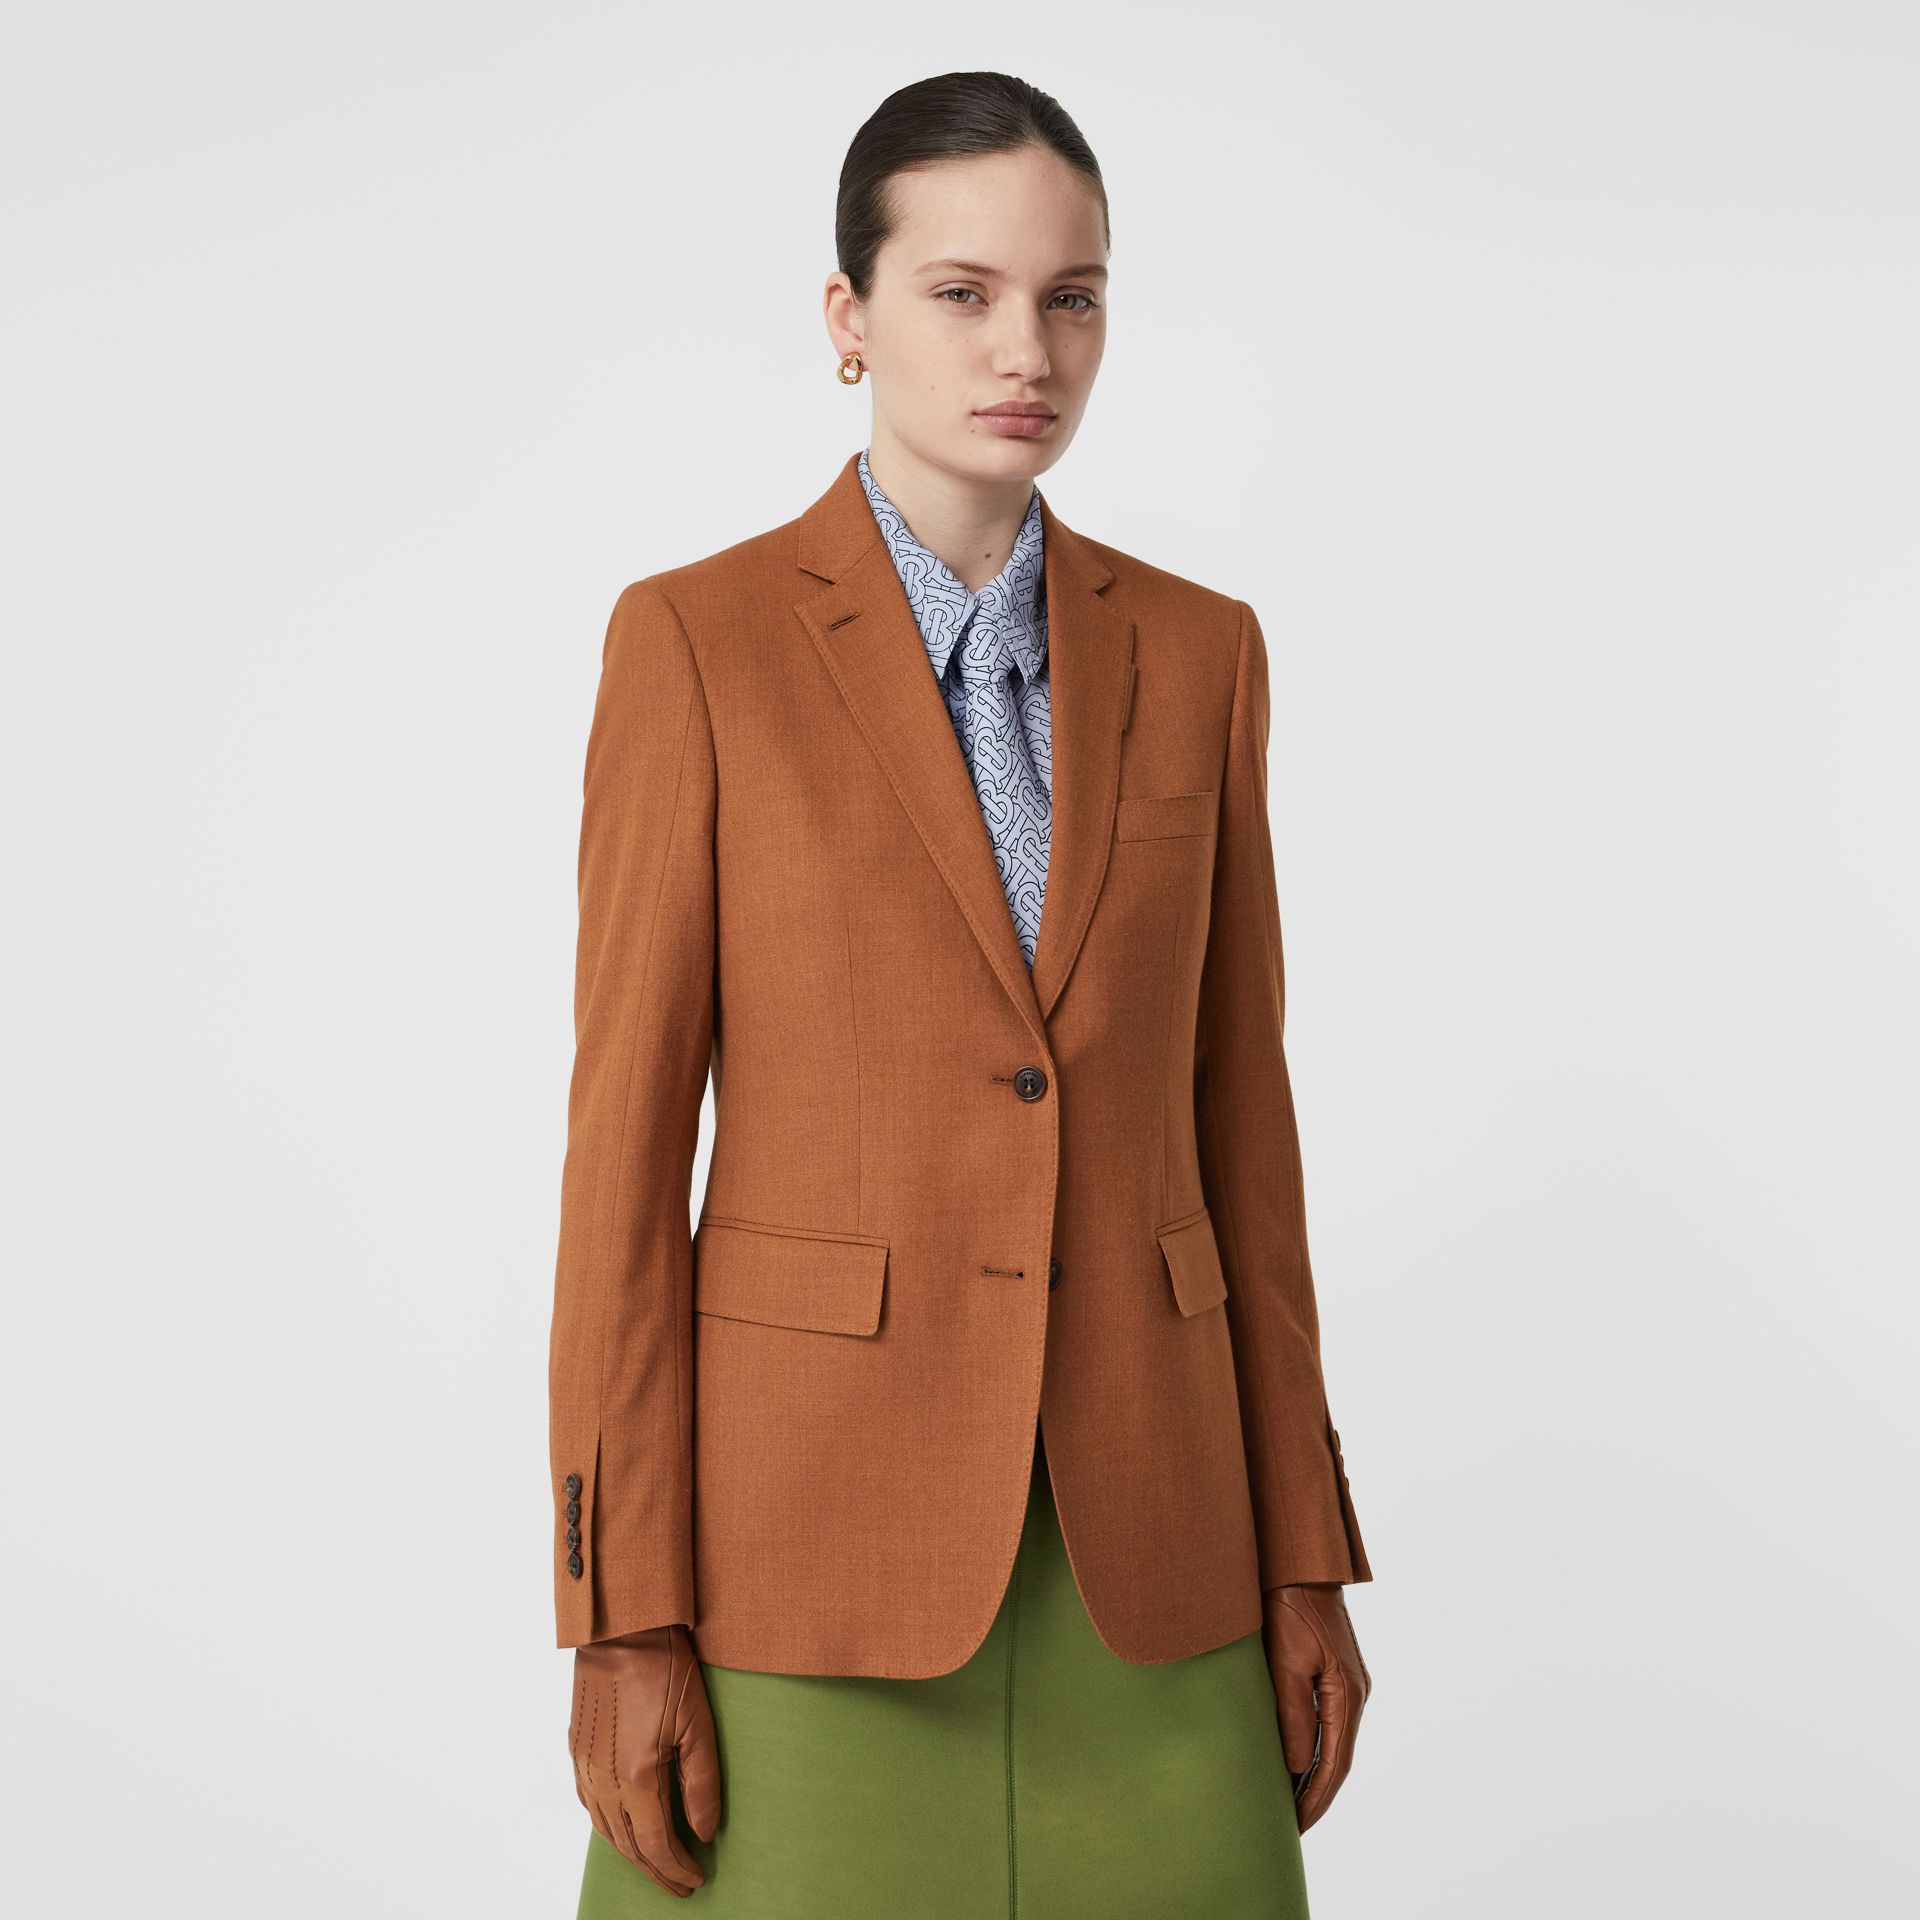 Wool, Silk and Cotton Blazer in Rust - Women | Burberry Hong Kong S.A.R - gallery image 4